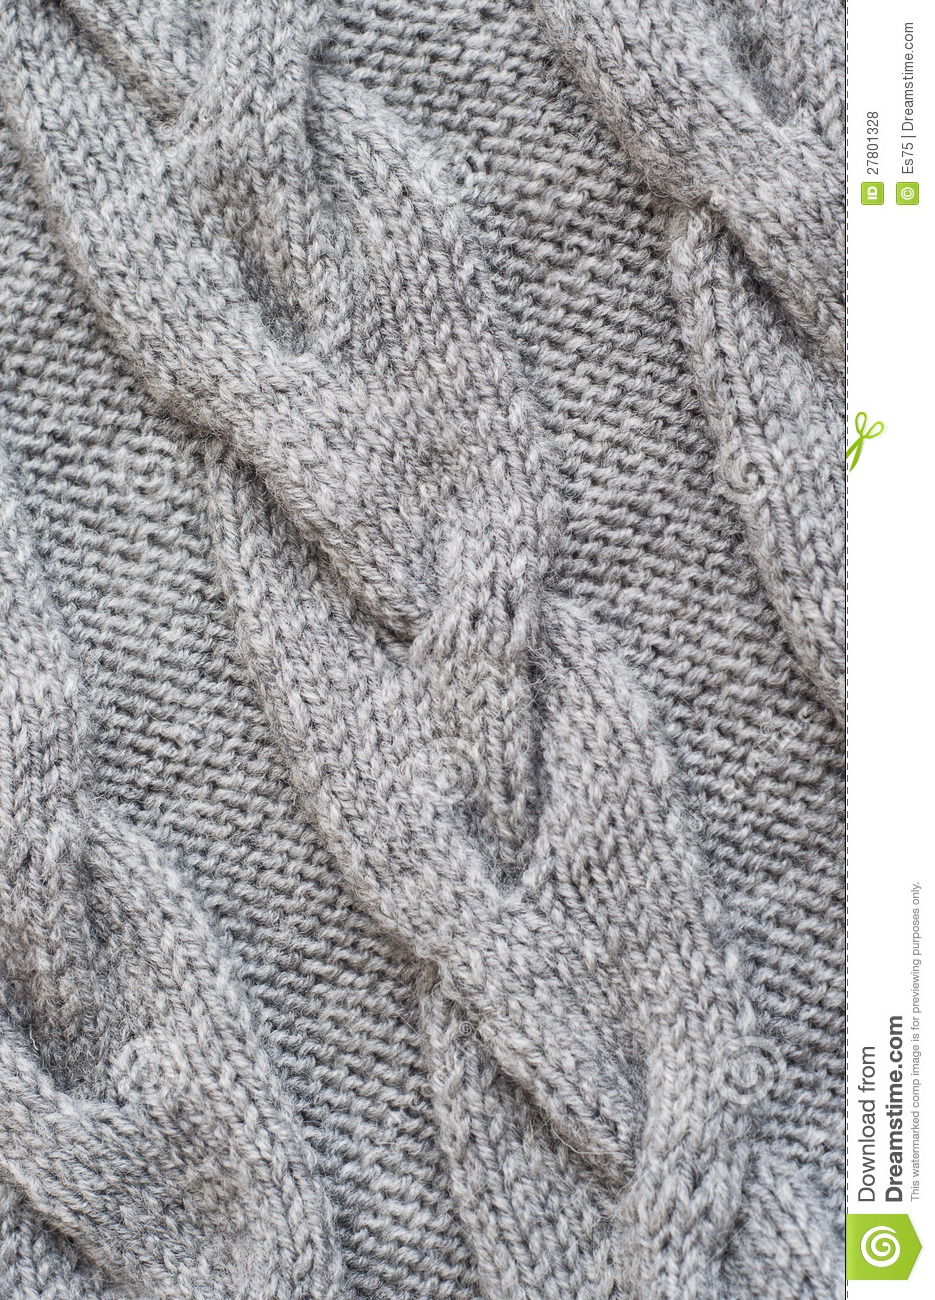 Woolen Knitting Patterns : Wool Patterns Royalty Free Stock Photos - Image: 27801328